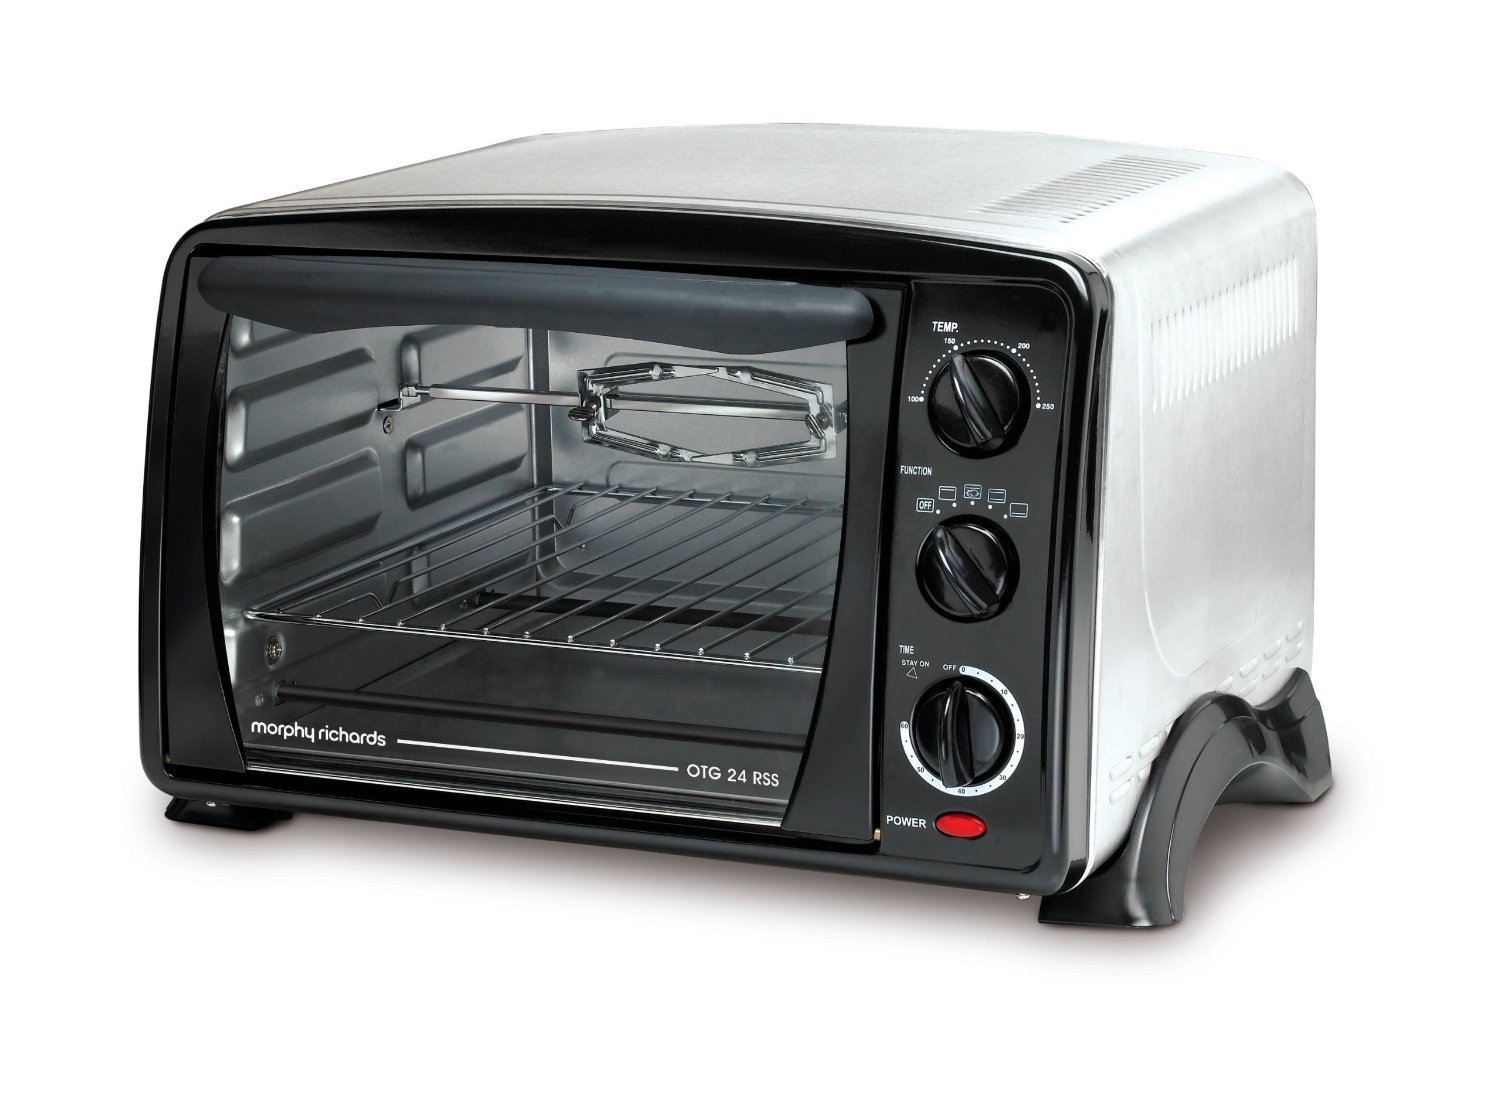 morphy richards 24 rss 24 litre stainless steel otg oven toaster rh sharmilazkitchen com Morphy Richards UK morphy richards otg 18 rss user manual